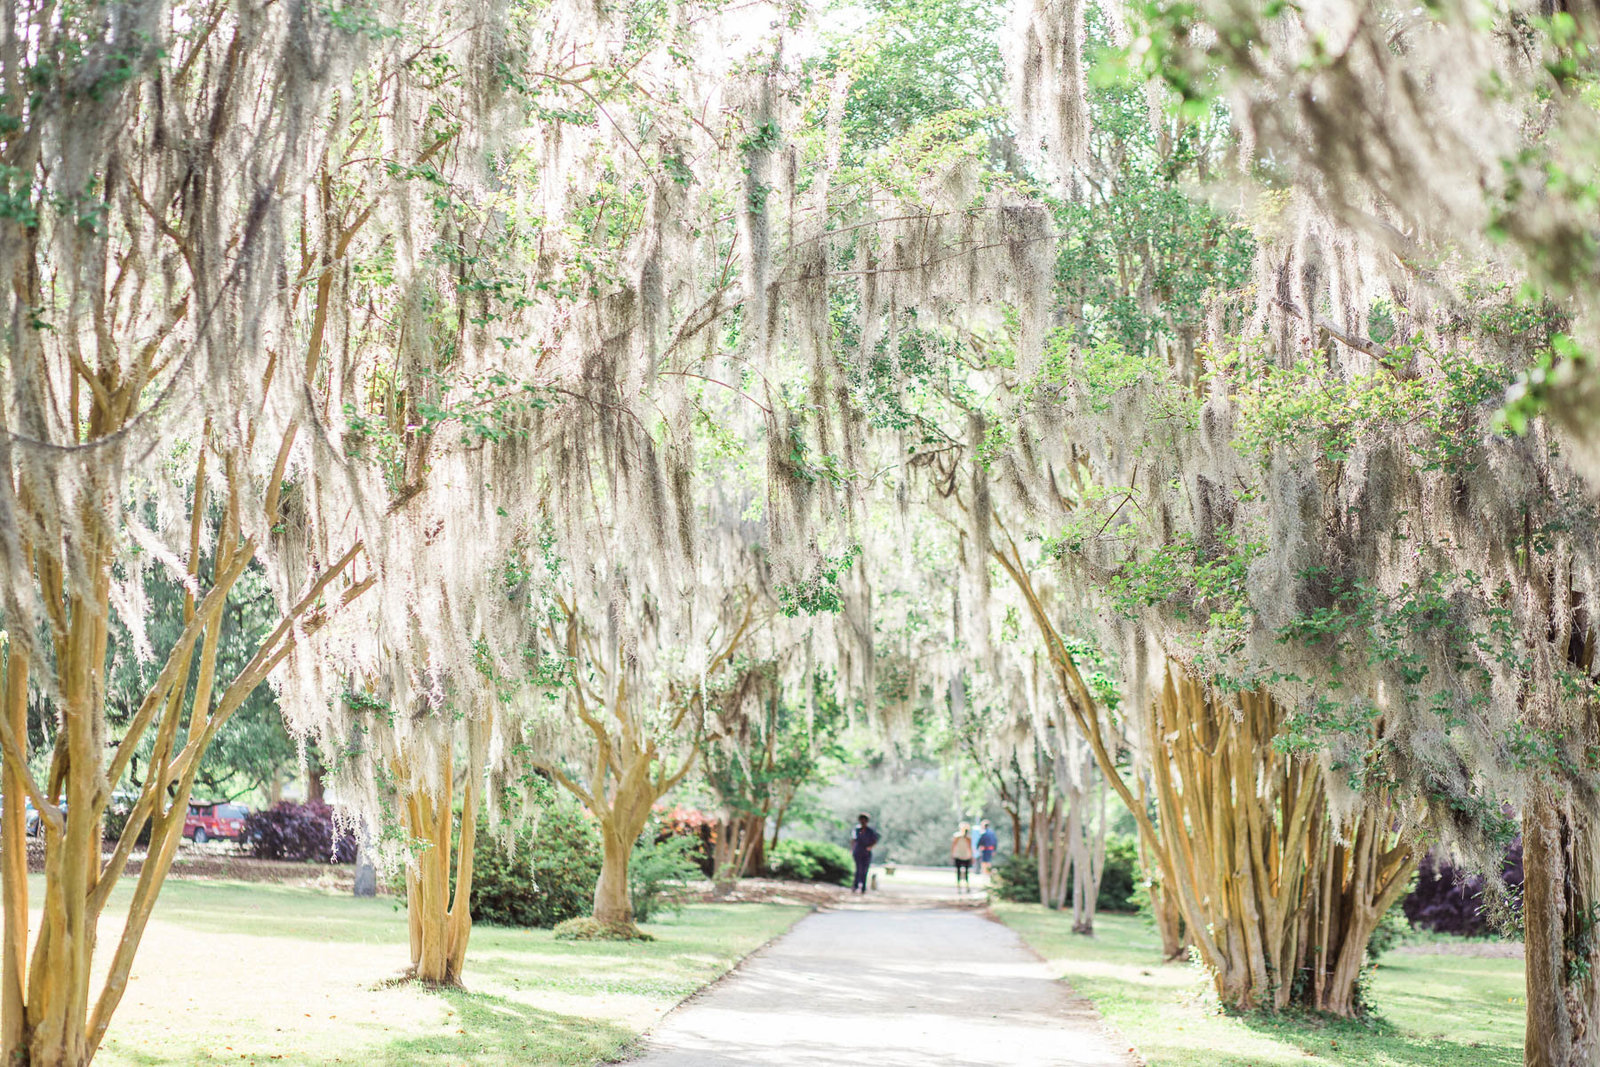 Pathway of trees have spanish moss hanging from them, Hampton Park, Charleston, South Carolina